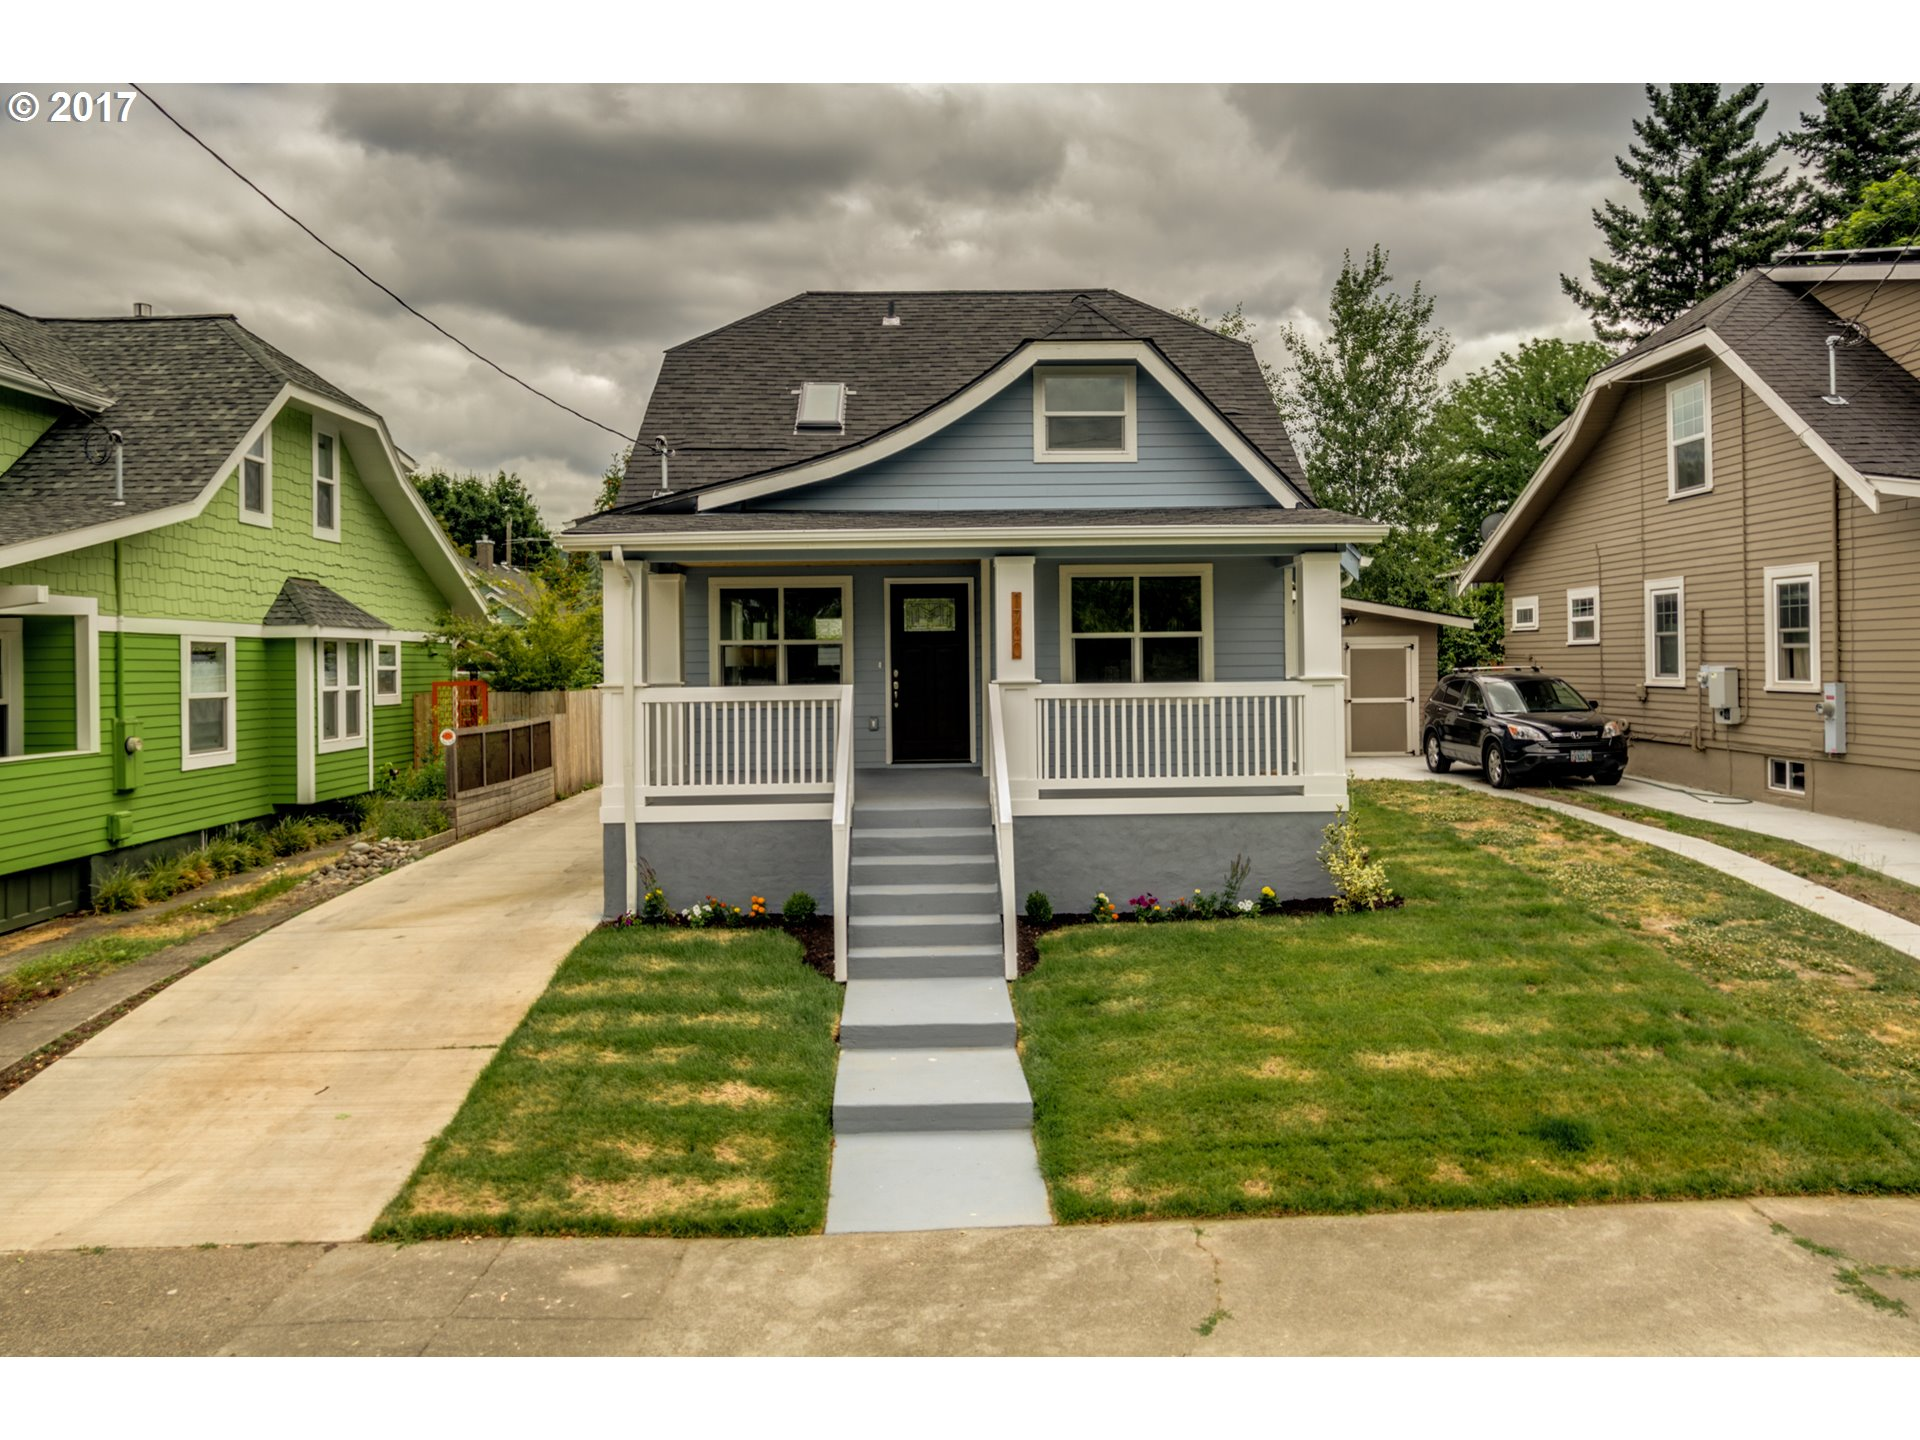 1700 Se 43rd Ave, Portland, OR 97215